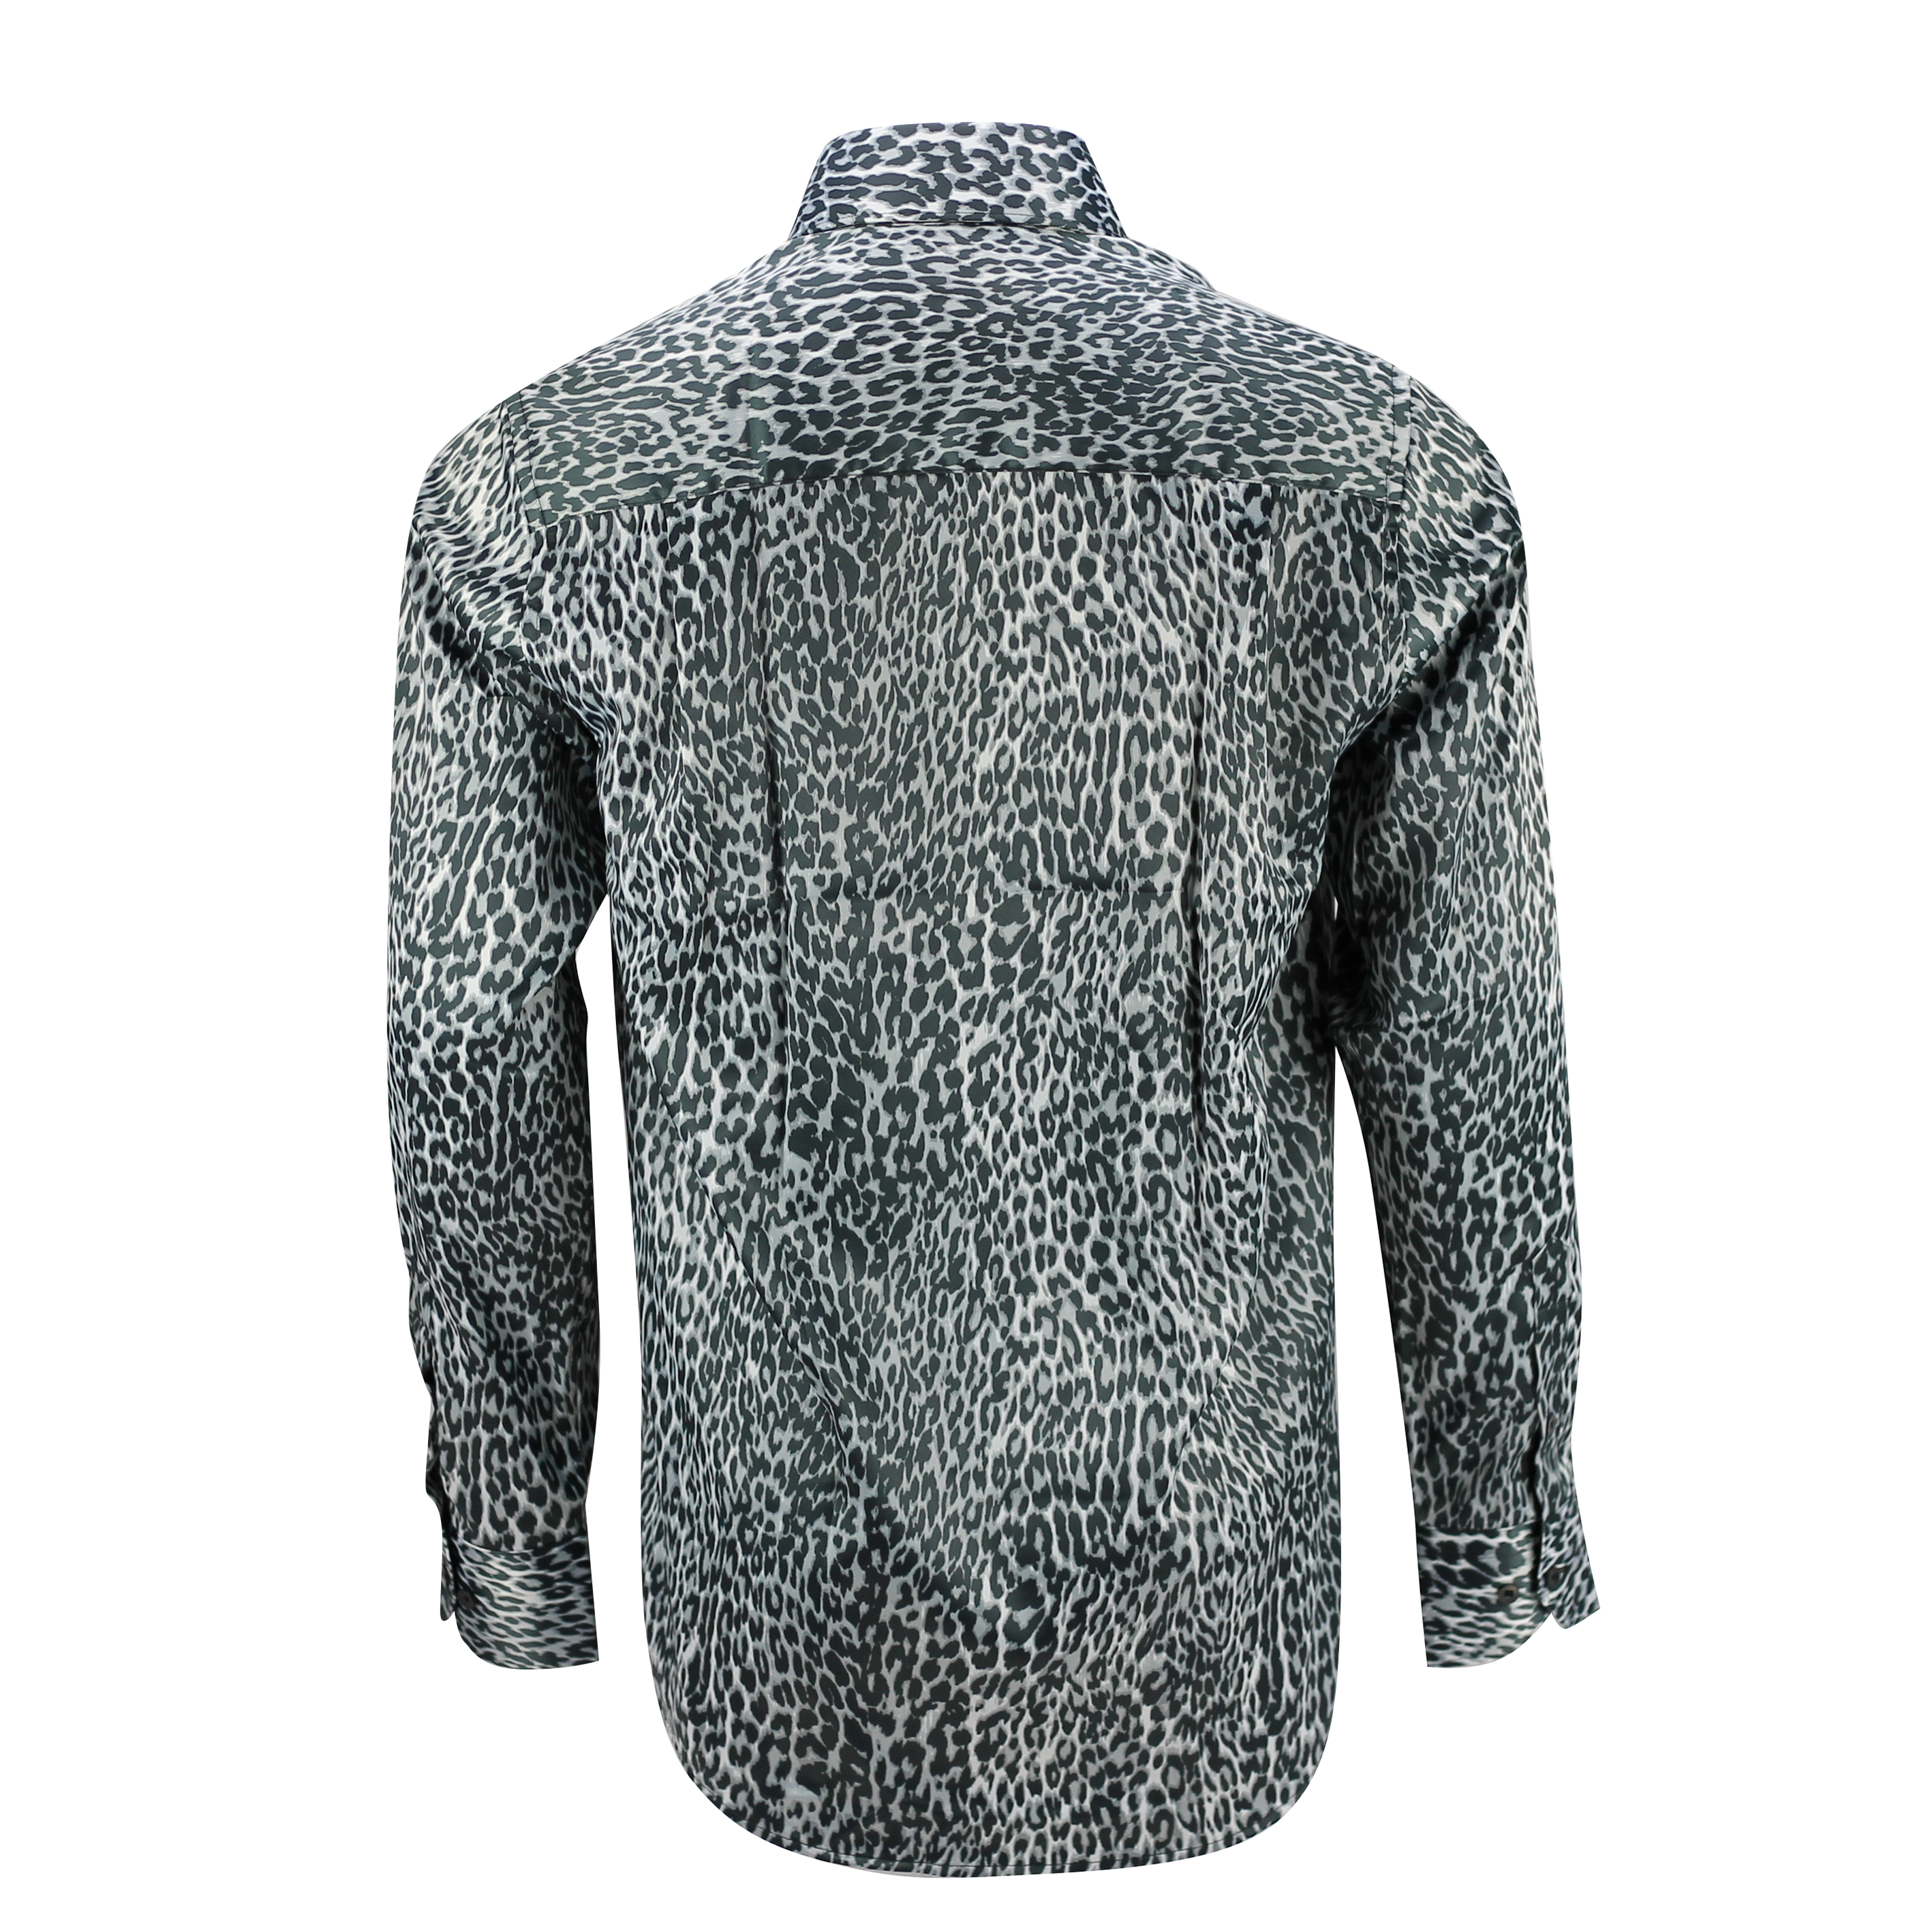 cd4c667946320 Long Sleeve Cheetah Print Shirt - BCD Tofu House